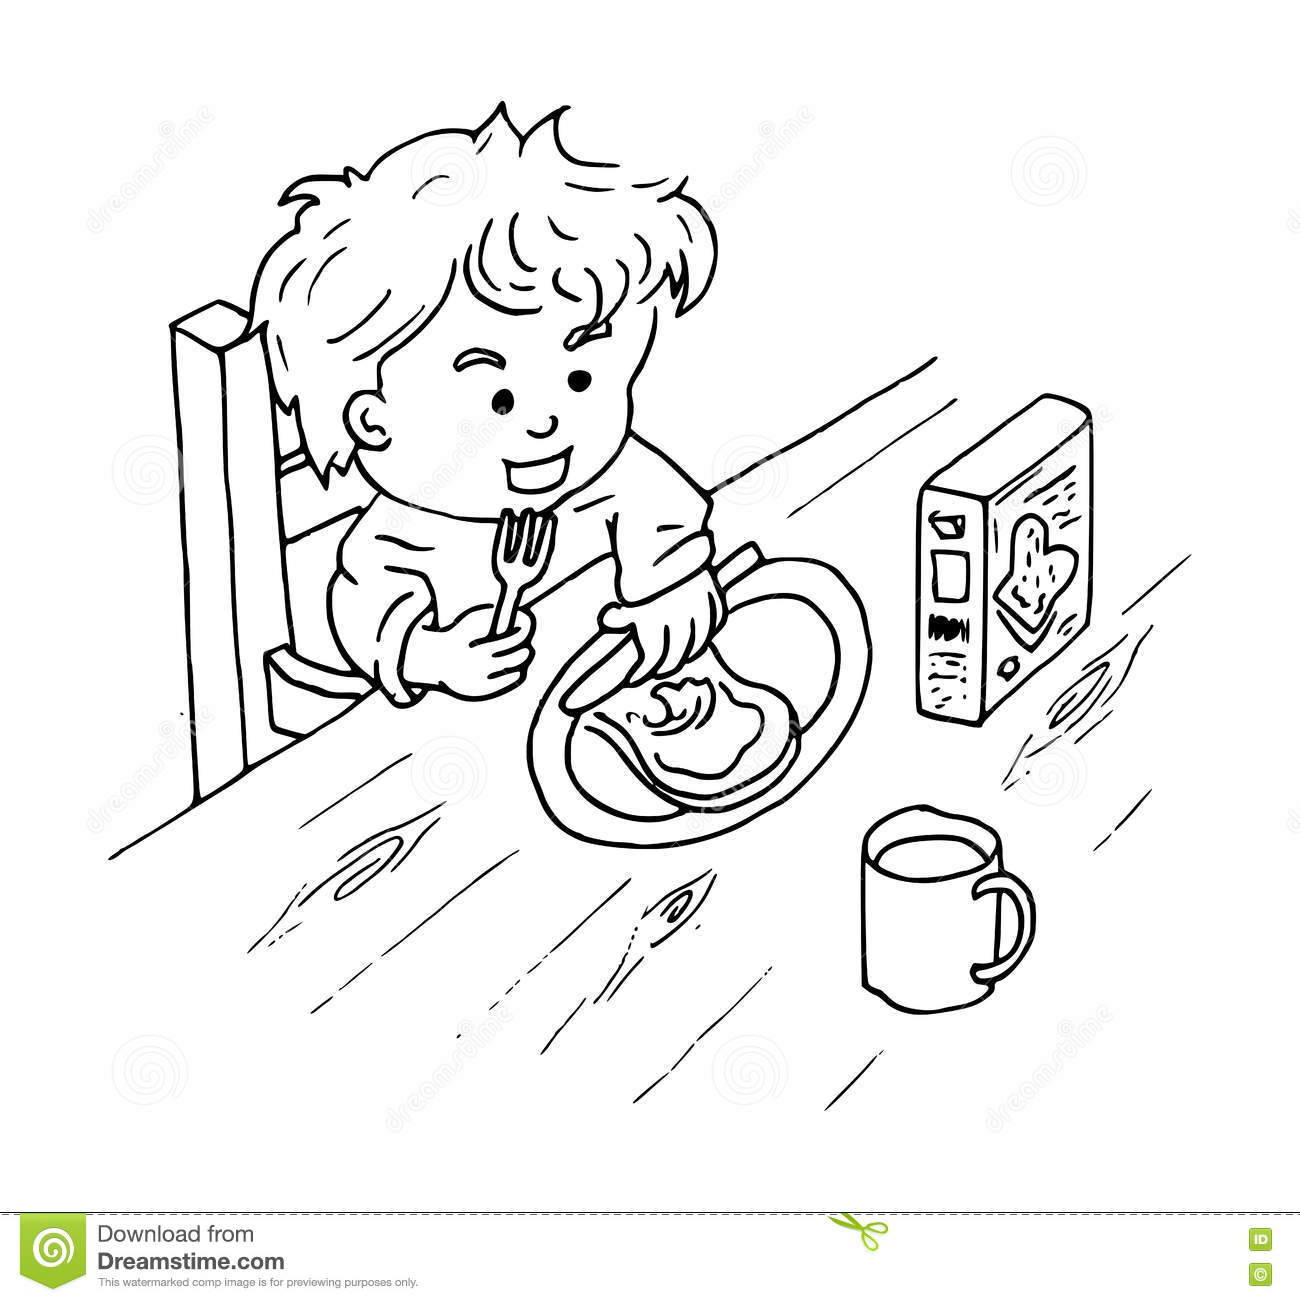 Healthy breakfast coloring pages - a-k-b.info